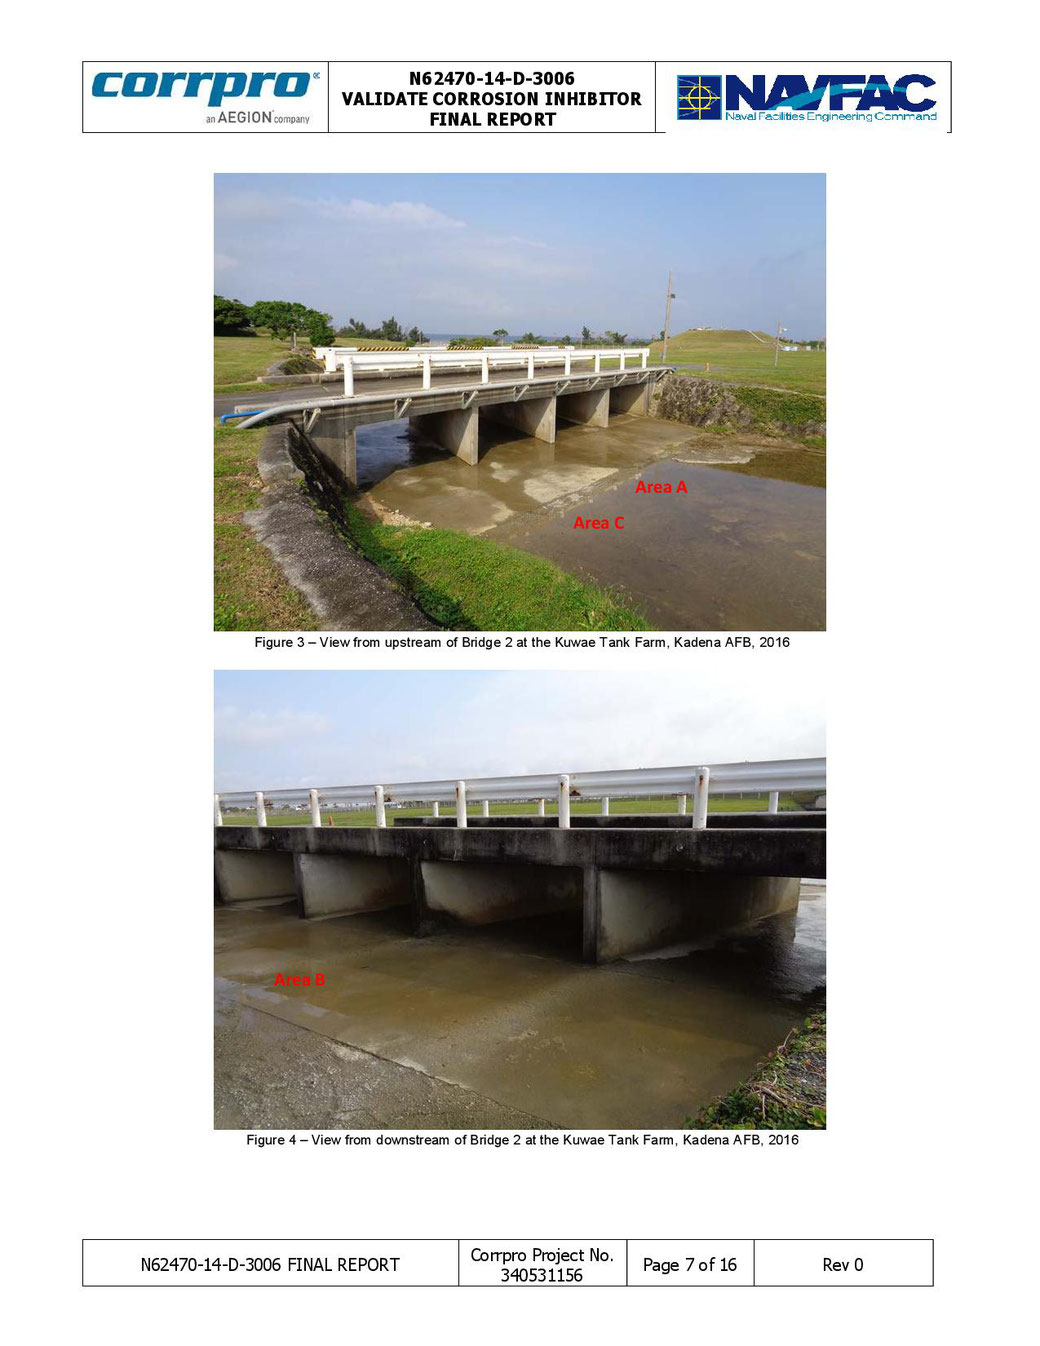 Bridges using SURTREAT Corrosion Inhibitors Including VCI.